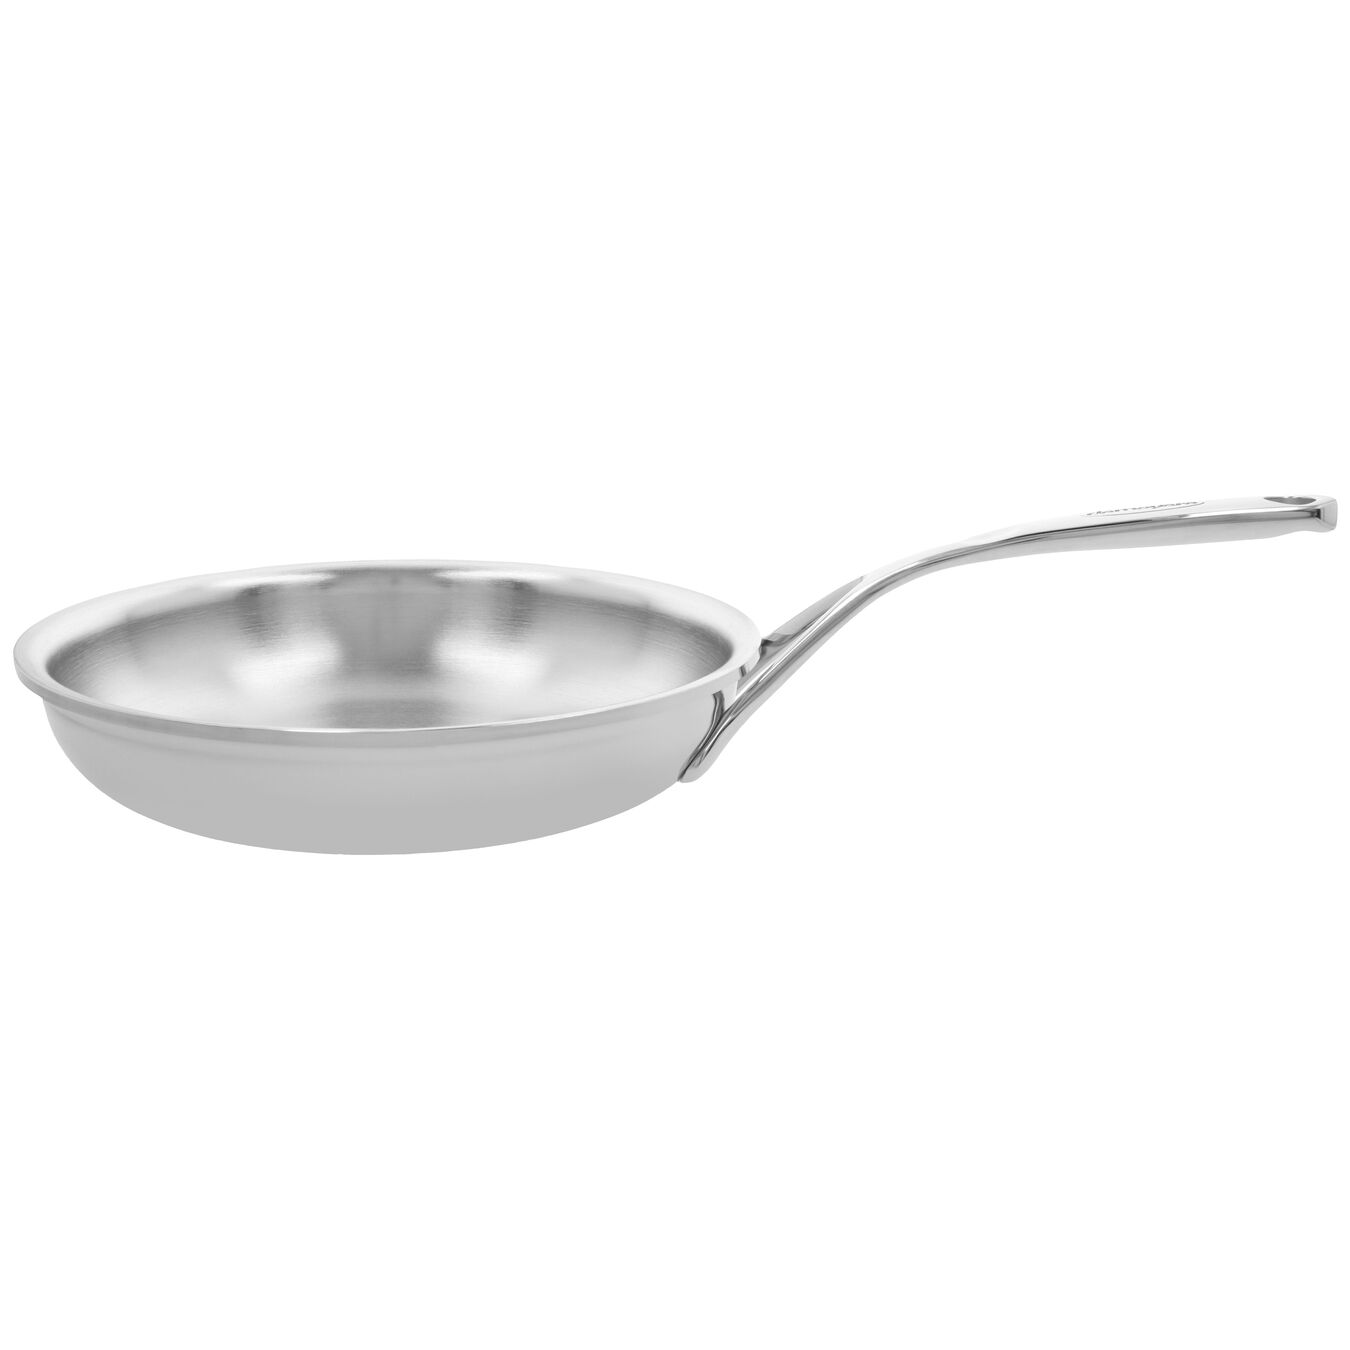 9-inch, 18/10 Stainless Steel, Proline Fry Pan,,large 1